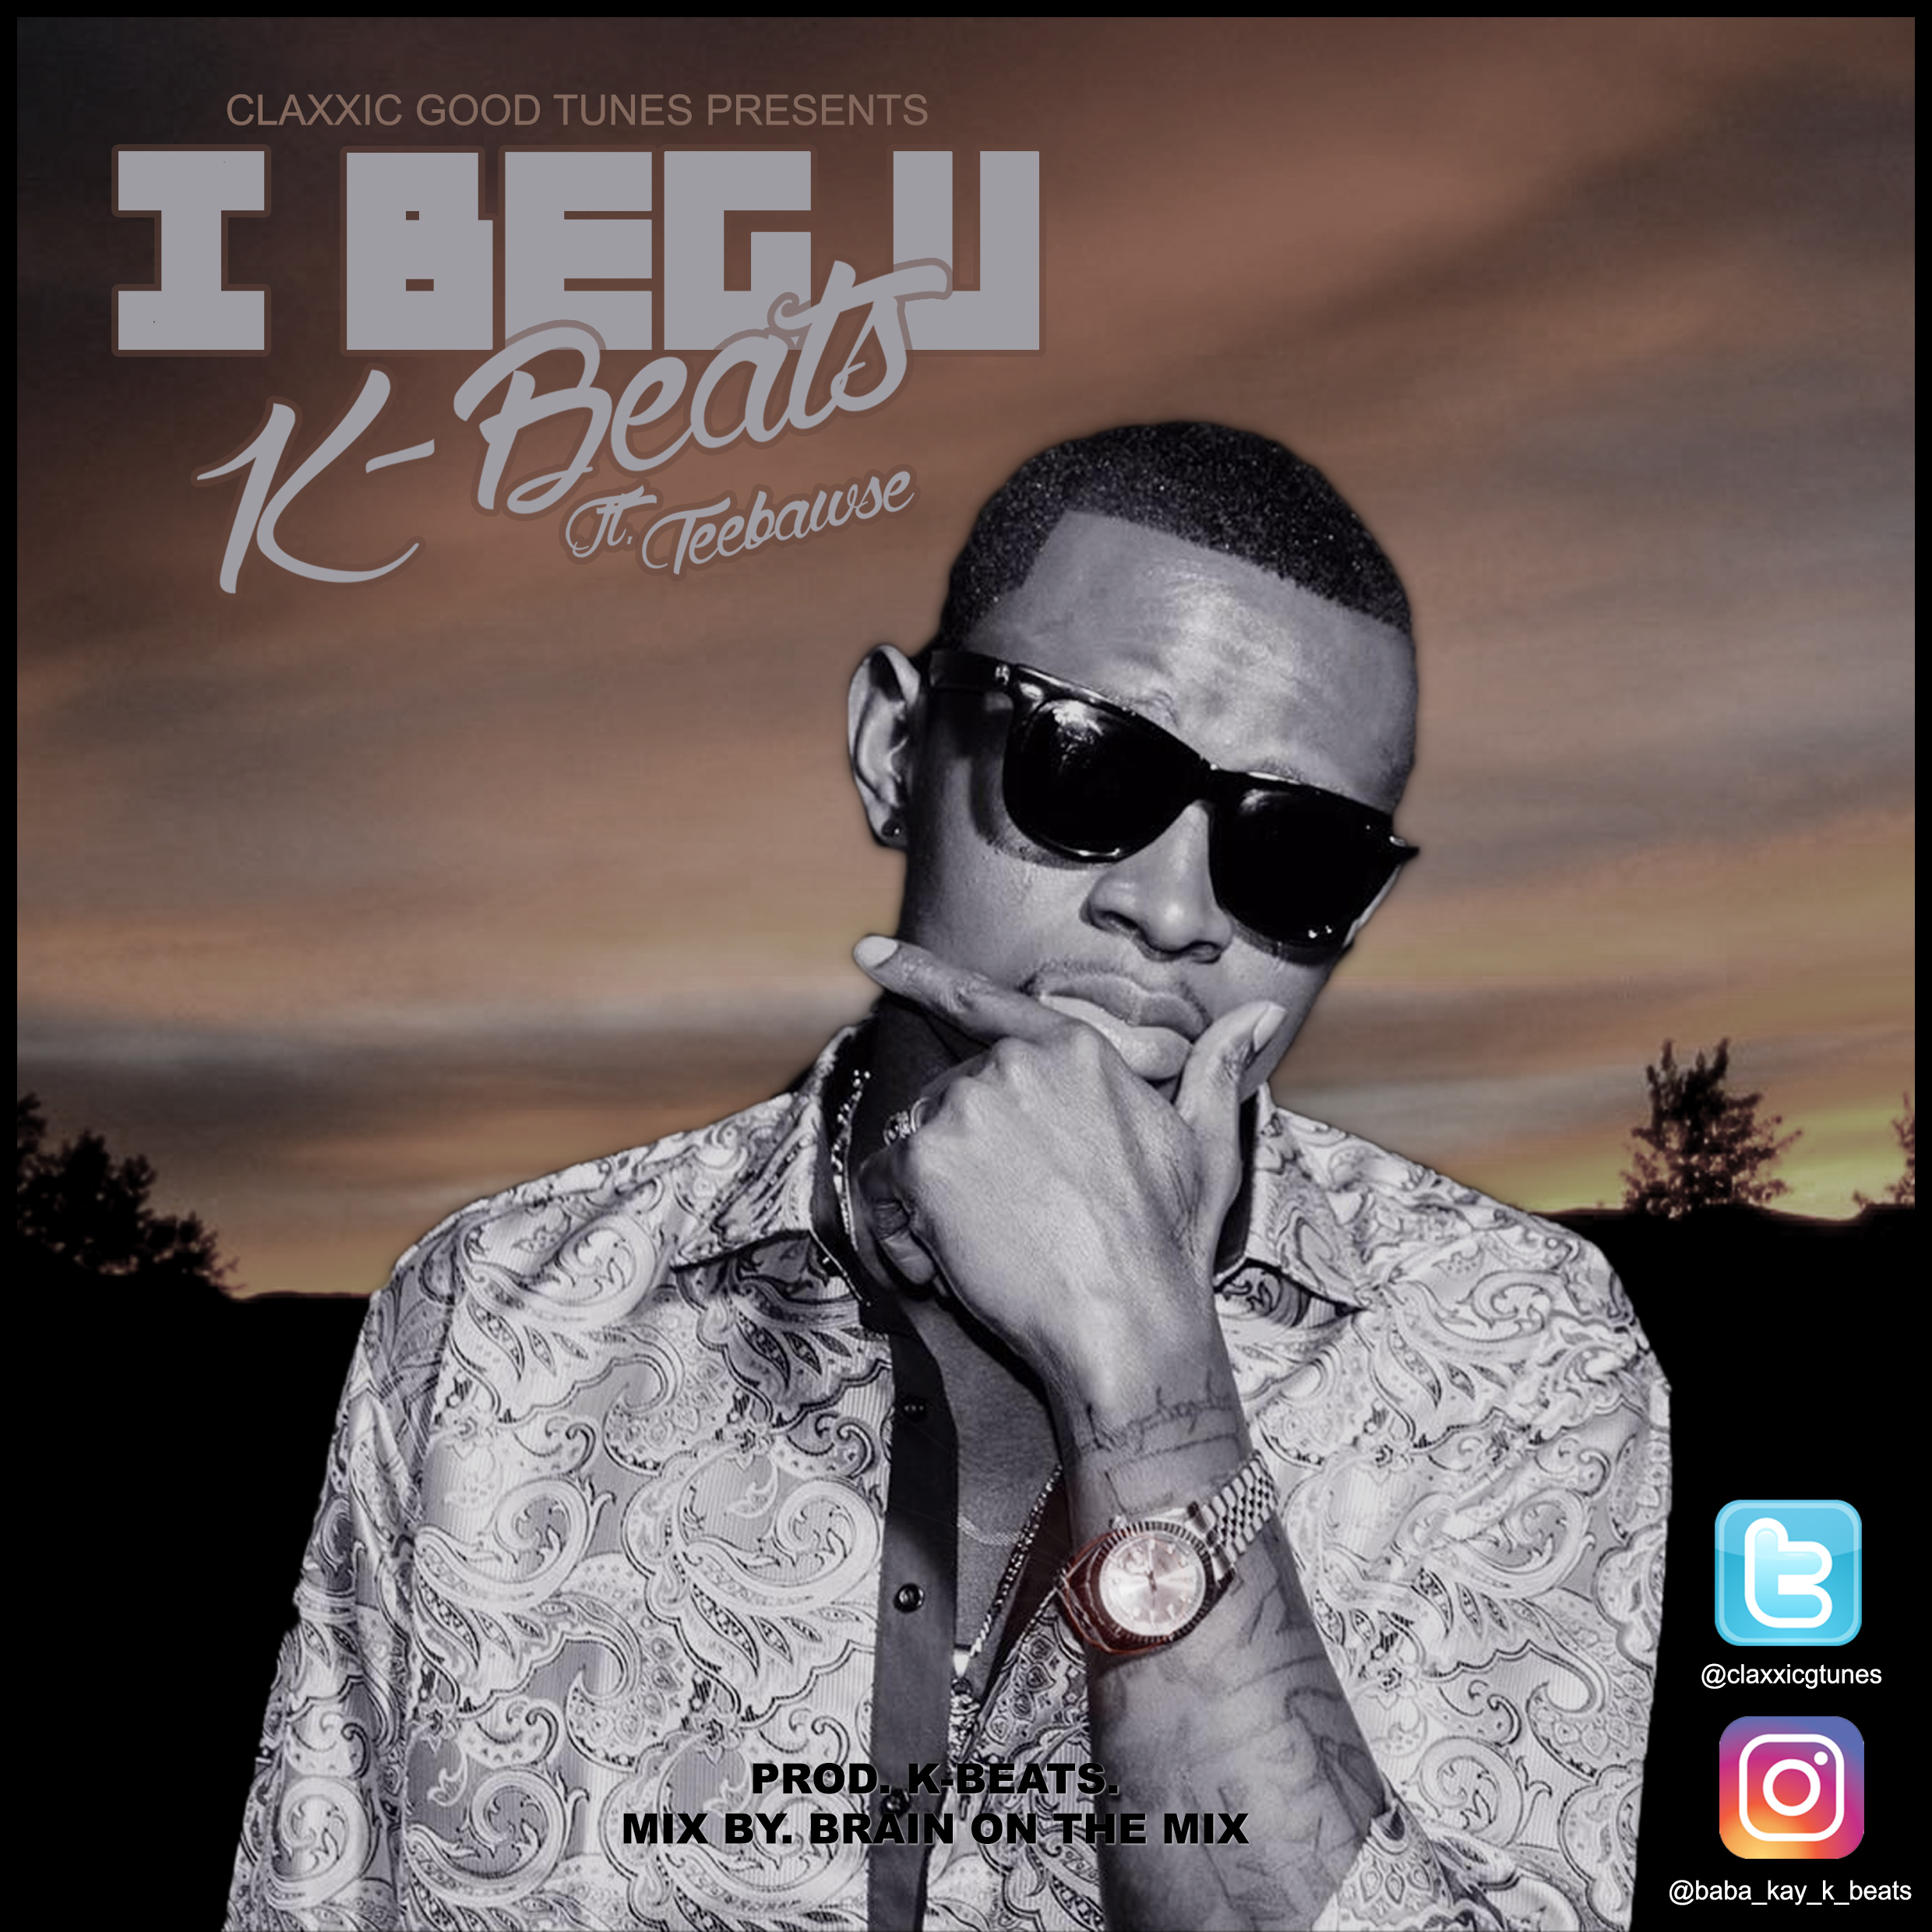 Kay-Beats ft. Teebawse – I Beg You